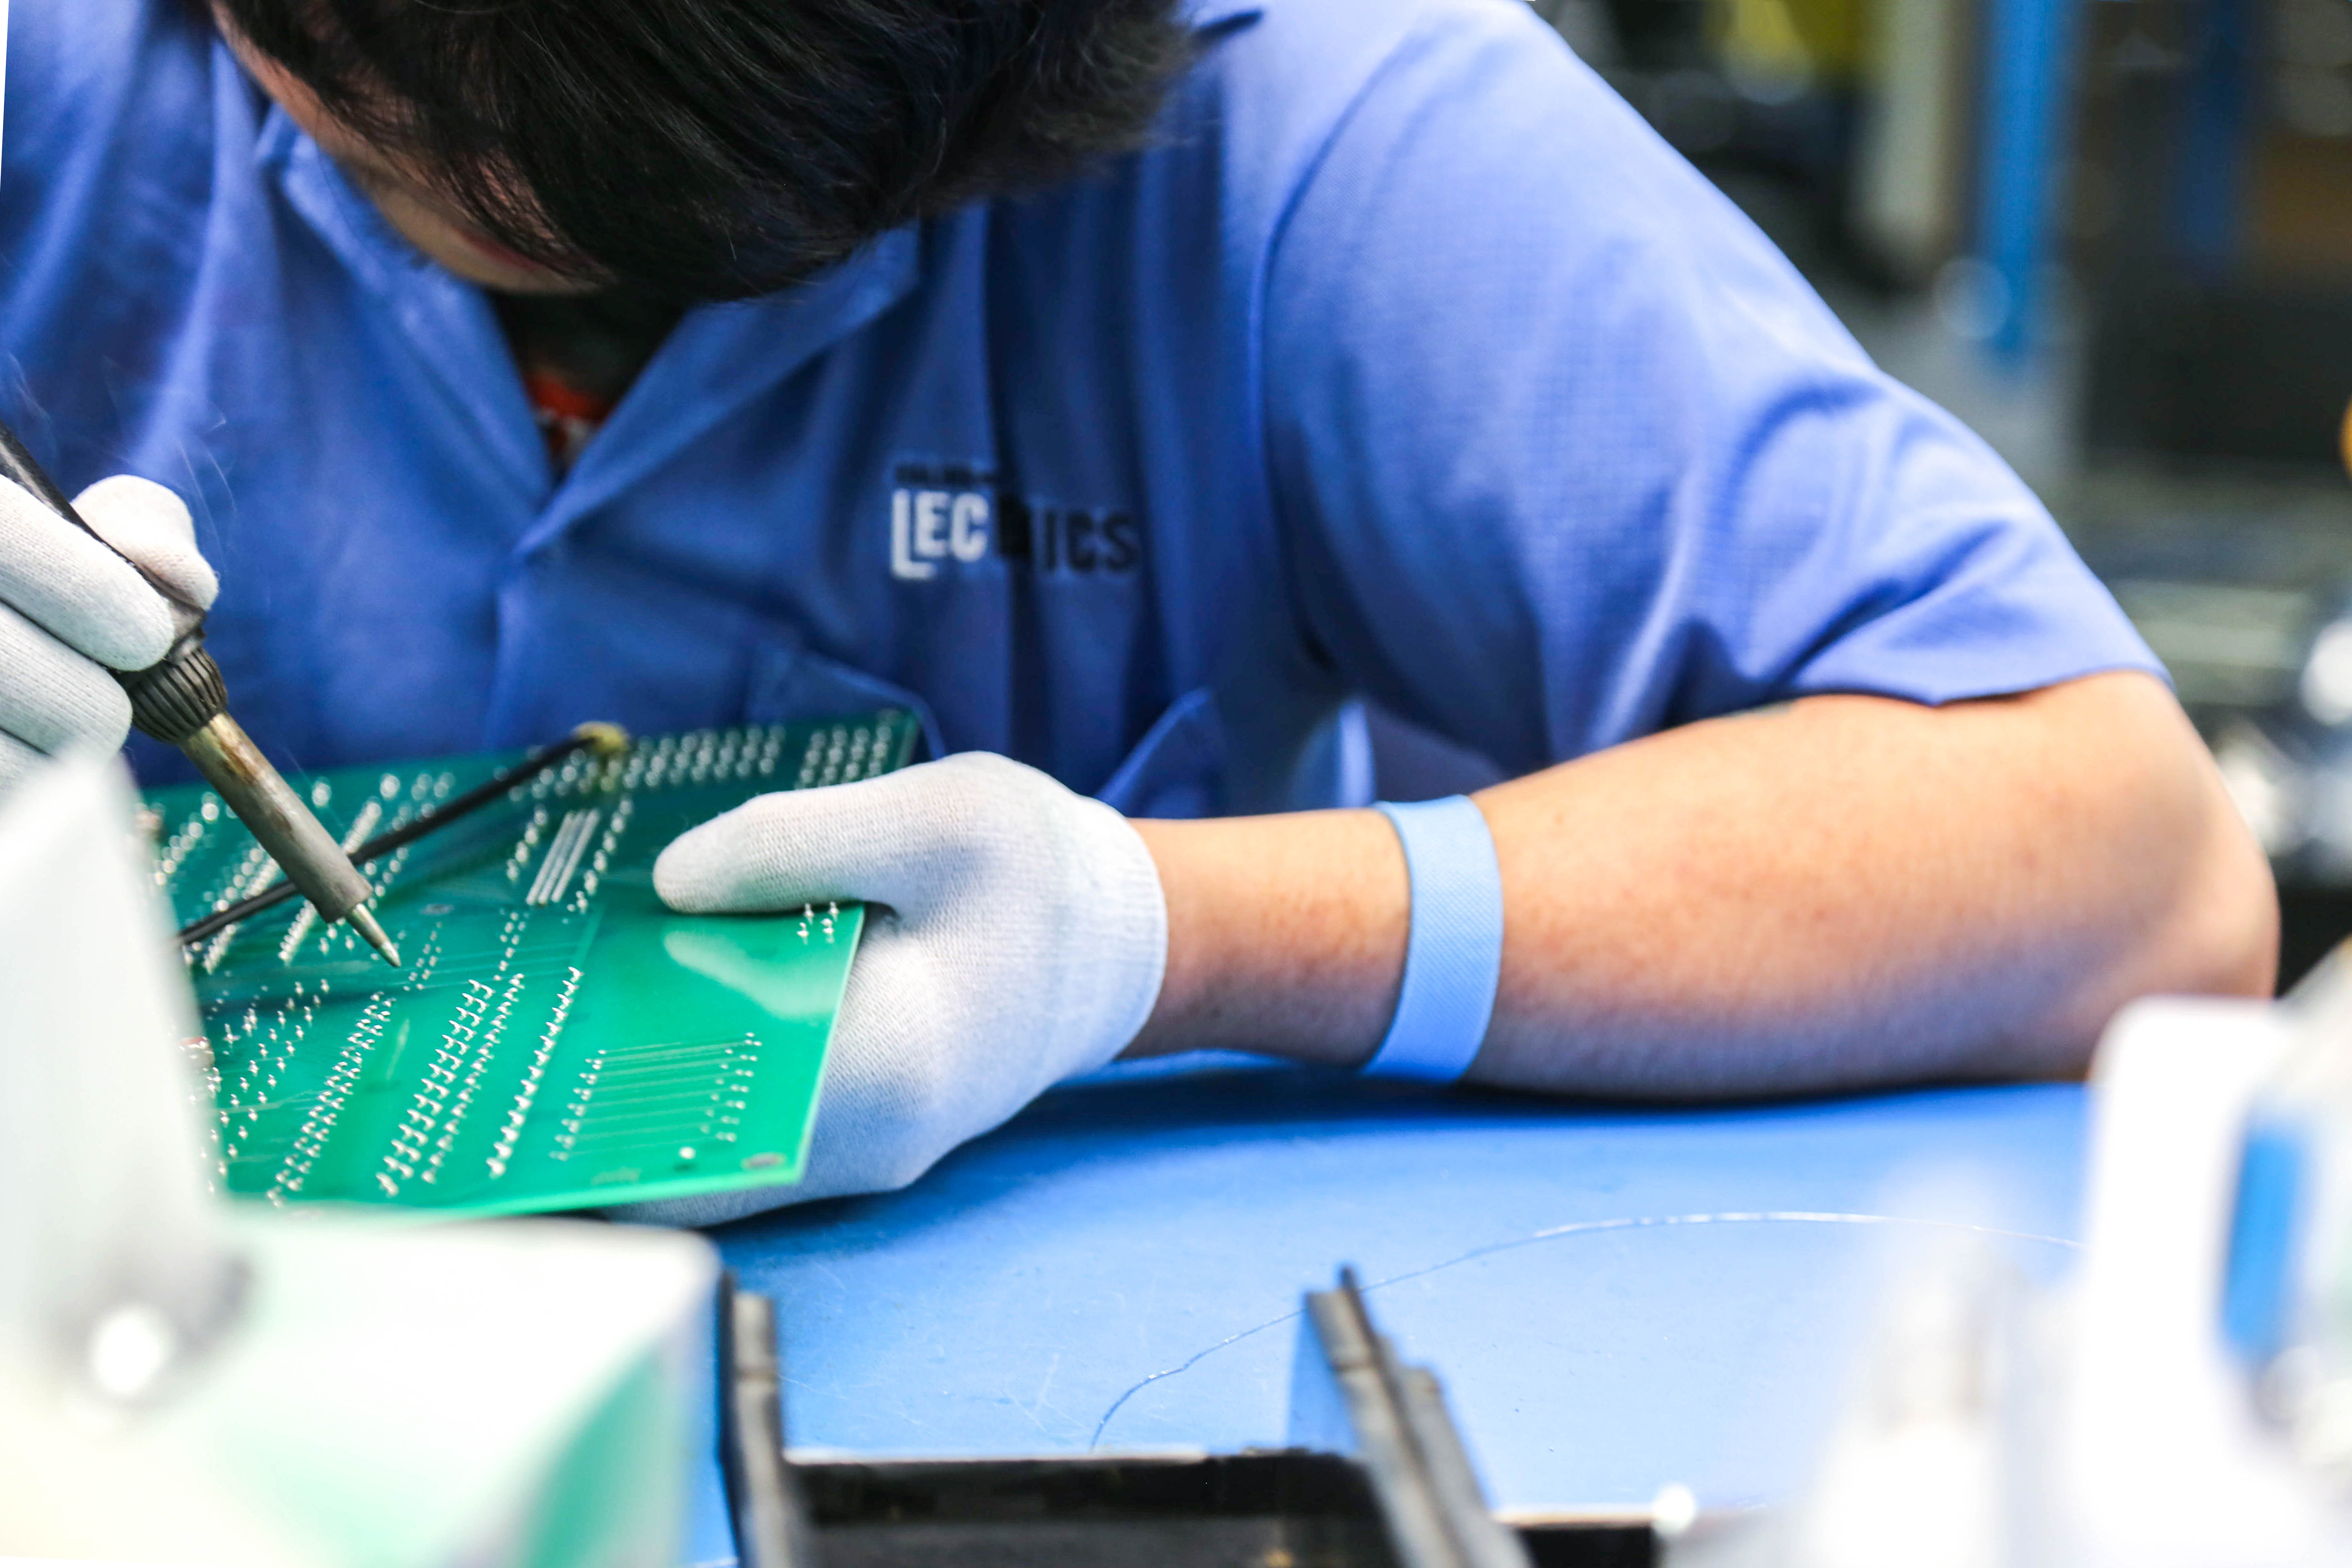 The Benefits Of Working With A Contract Manufacturer Saline Lectronics Specializes In Pcb Manufacturing Smt Circuit Schematic Diagram Partnering Licensed Trusted And Proven Cm Can Mean Benefiting From Higher Quality Print Boards Boxes Other Electronic Equipment